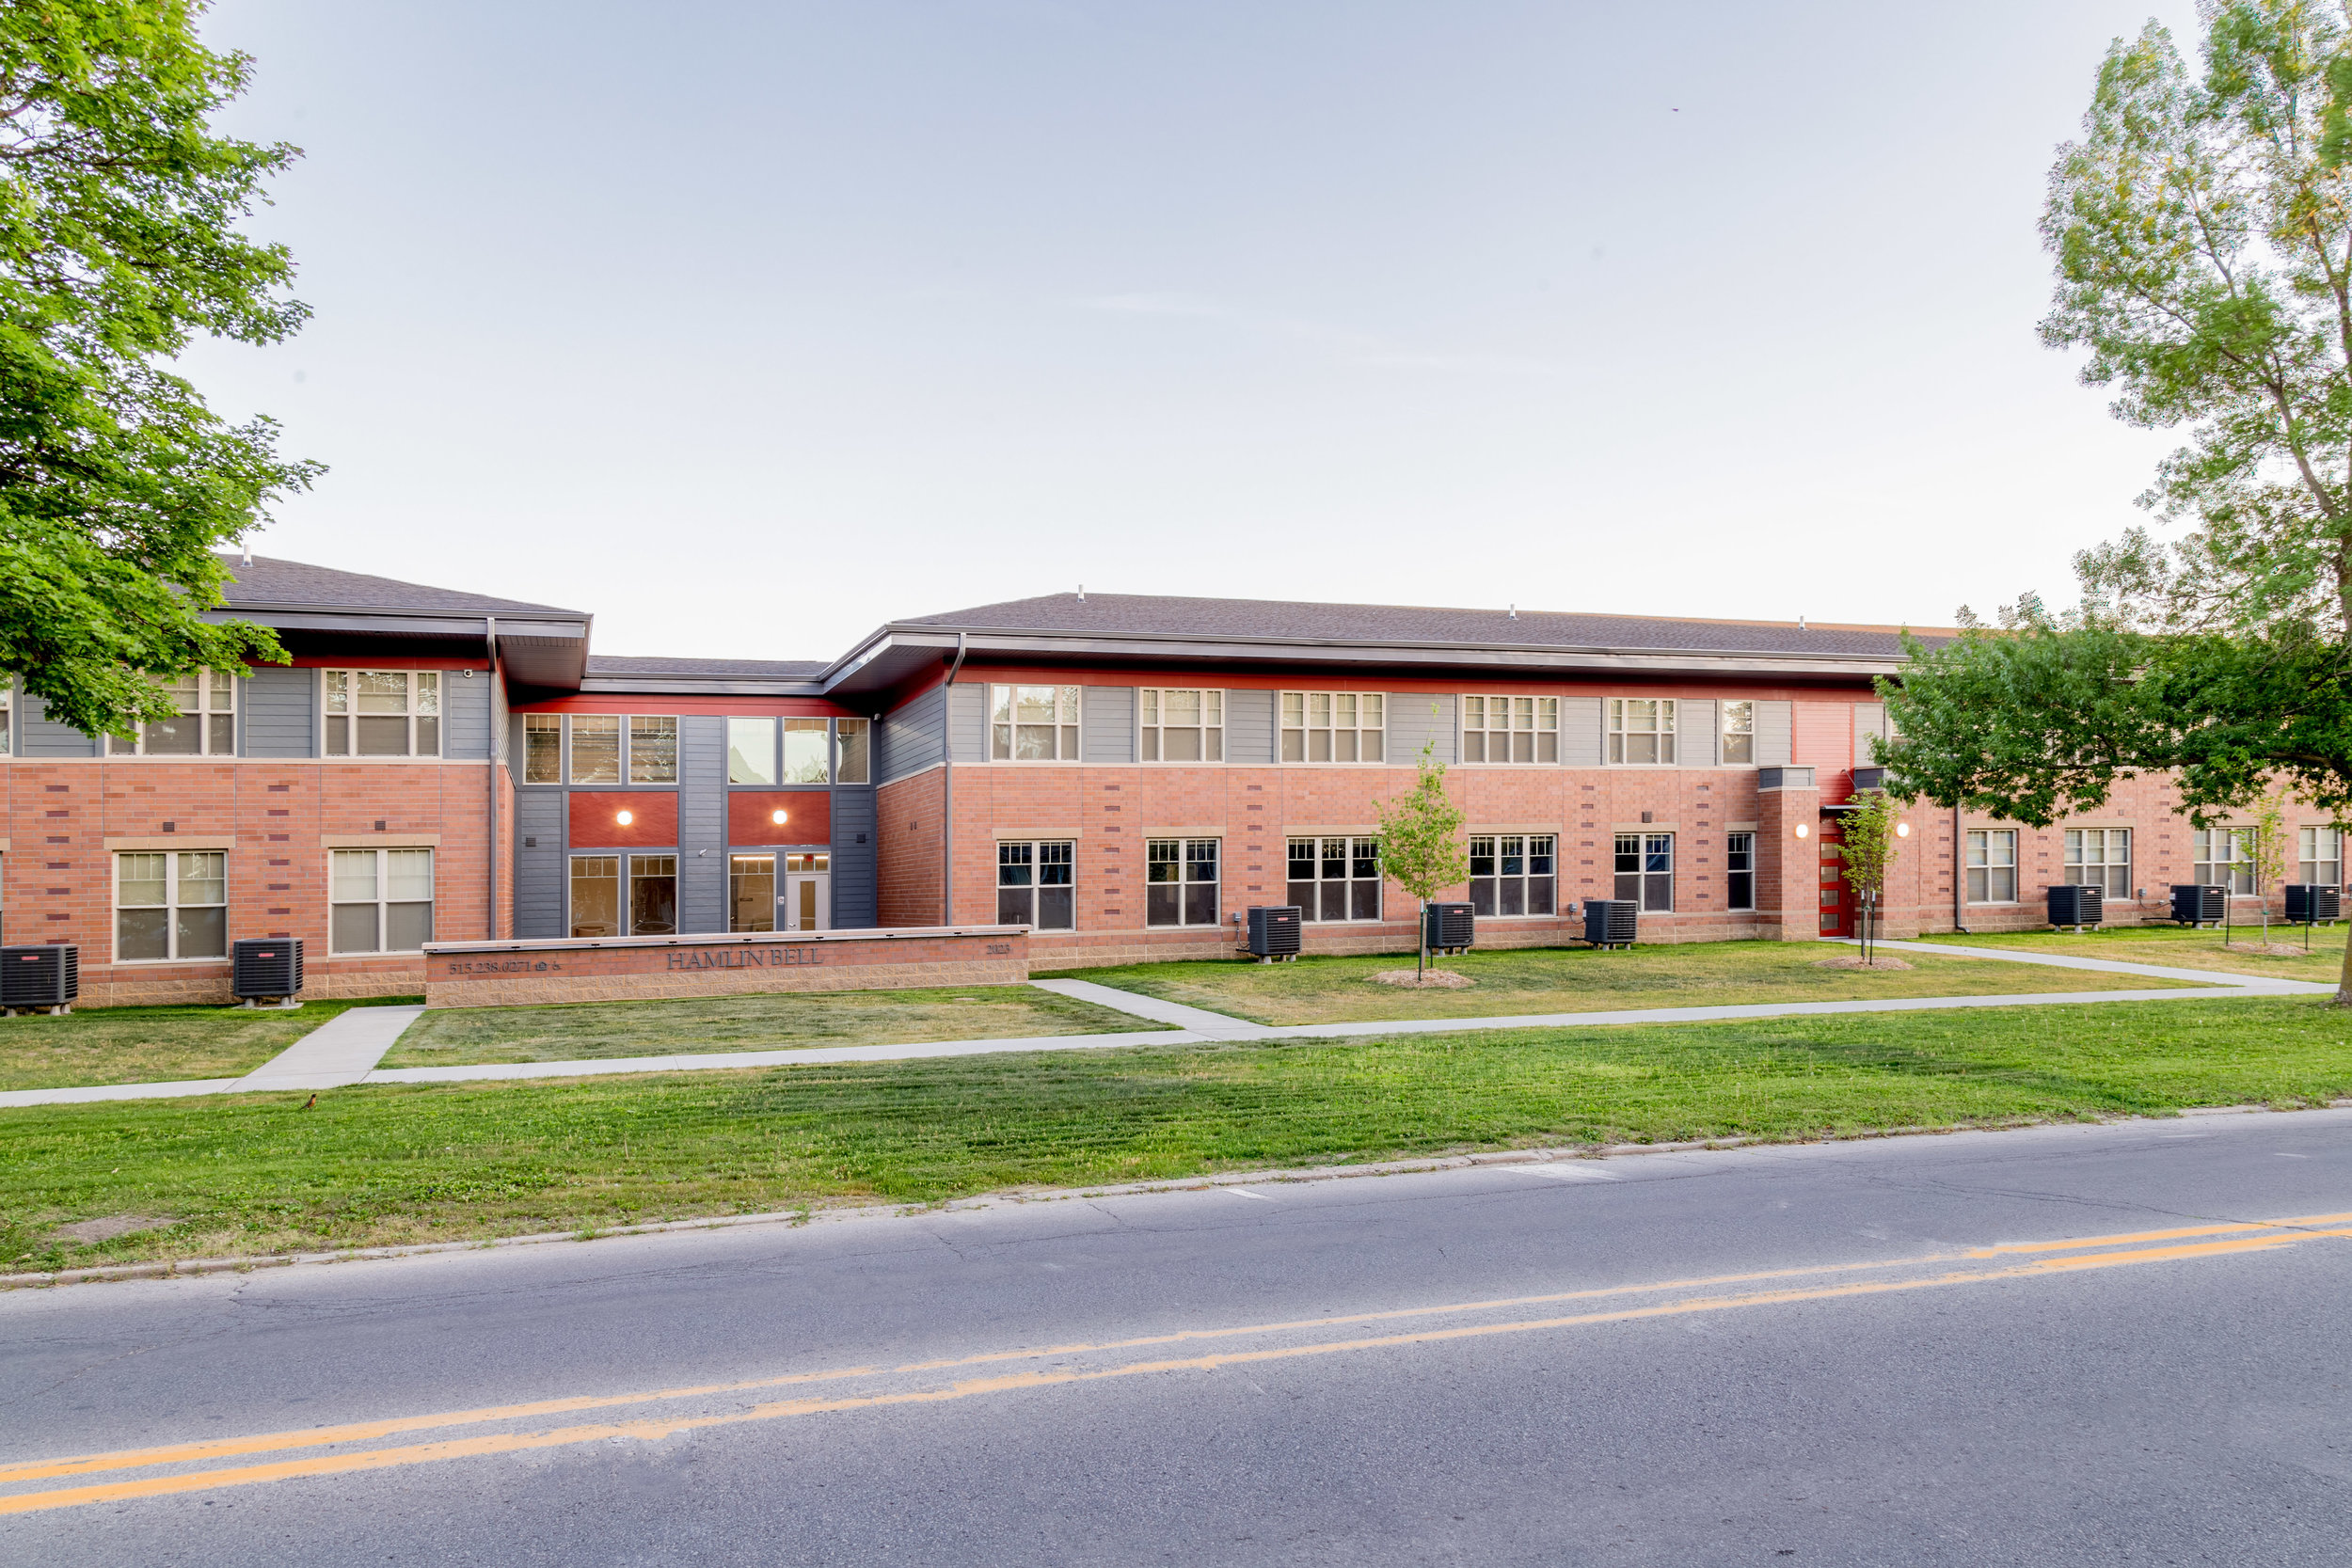 Hamlin Bell Senior Living- Perry, IA